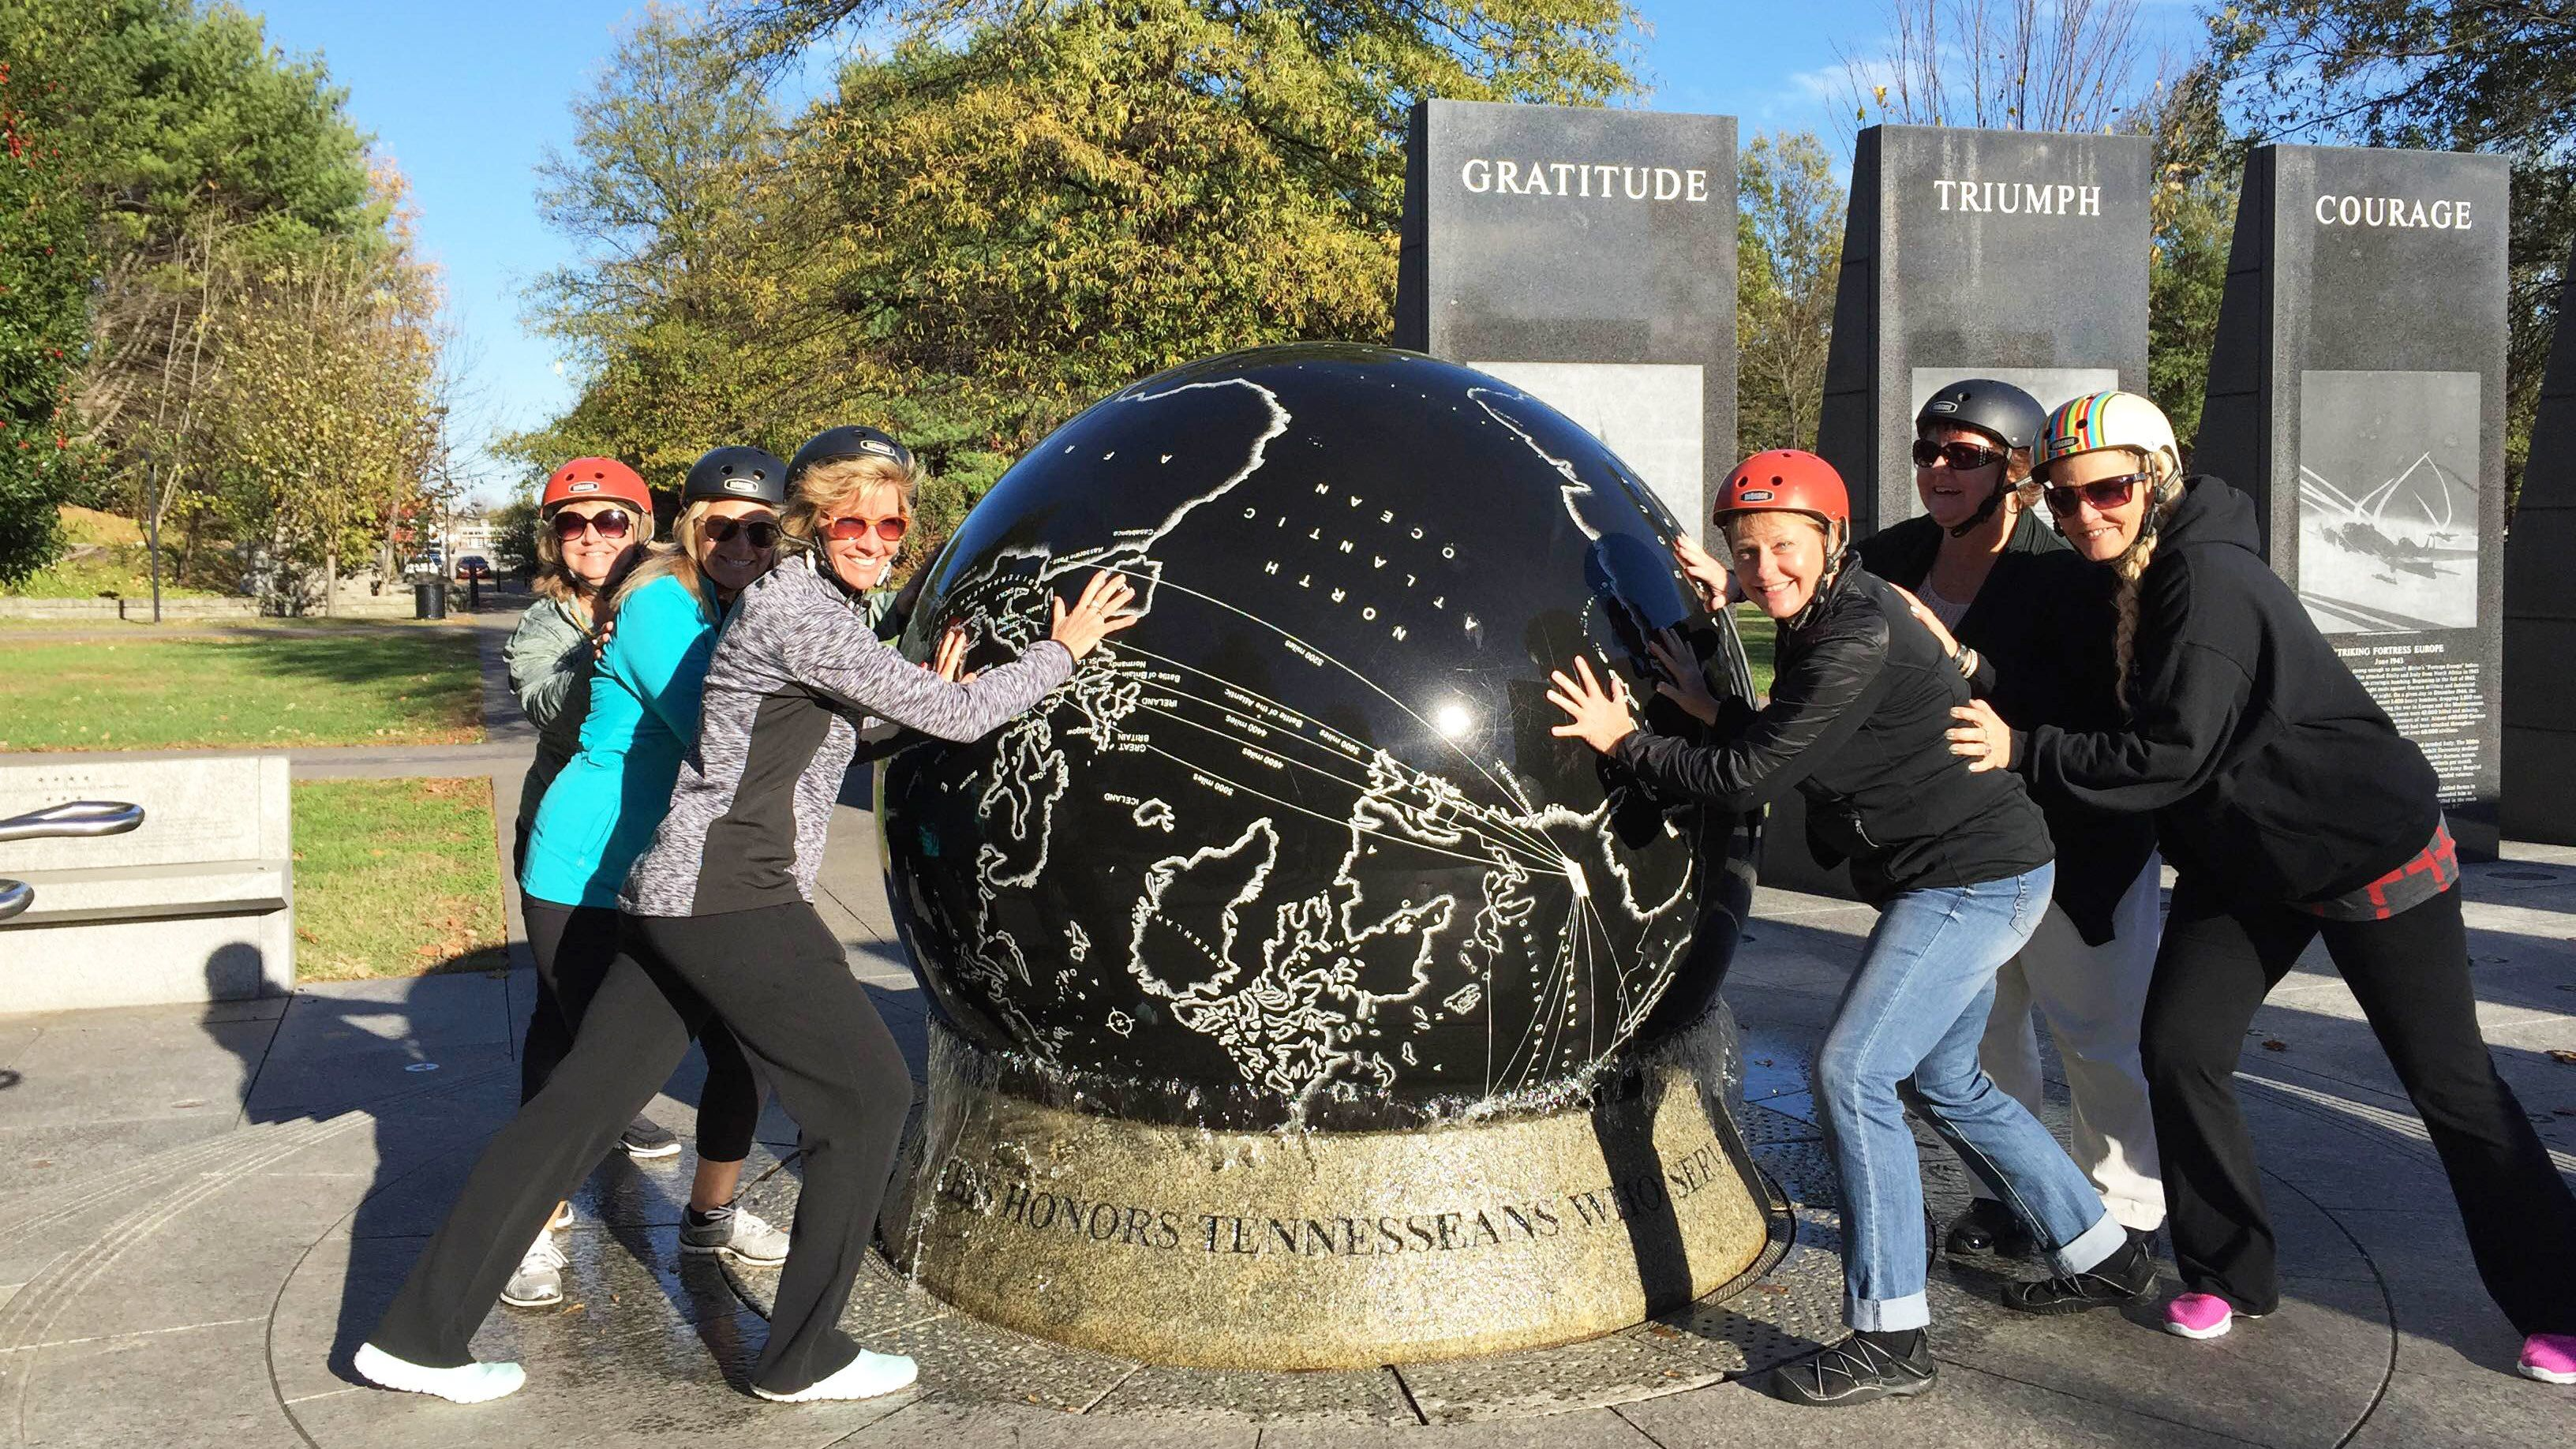 Segway group touch large globe in park in Nashville